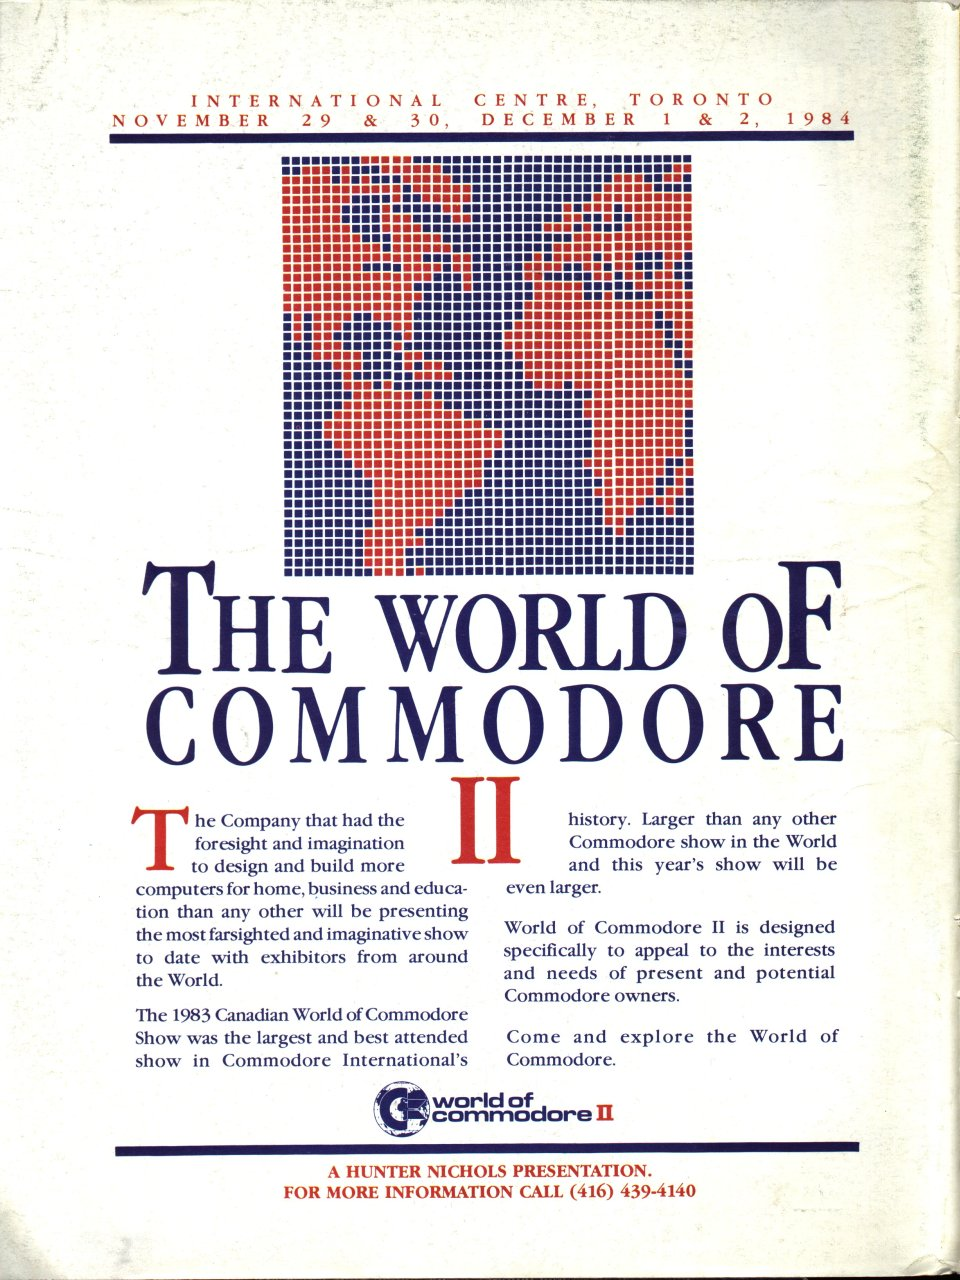 [Advertisement: The World of Commodore II]